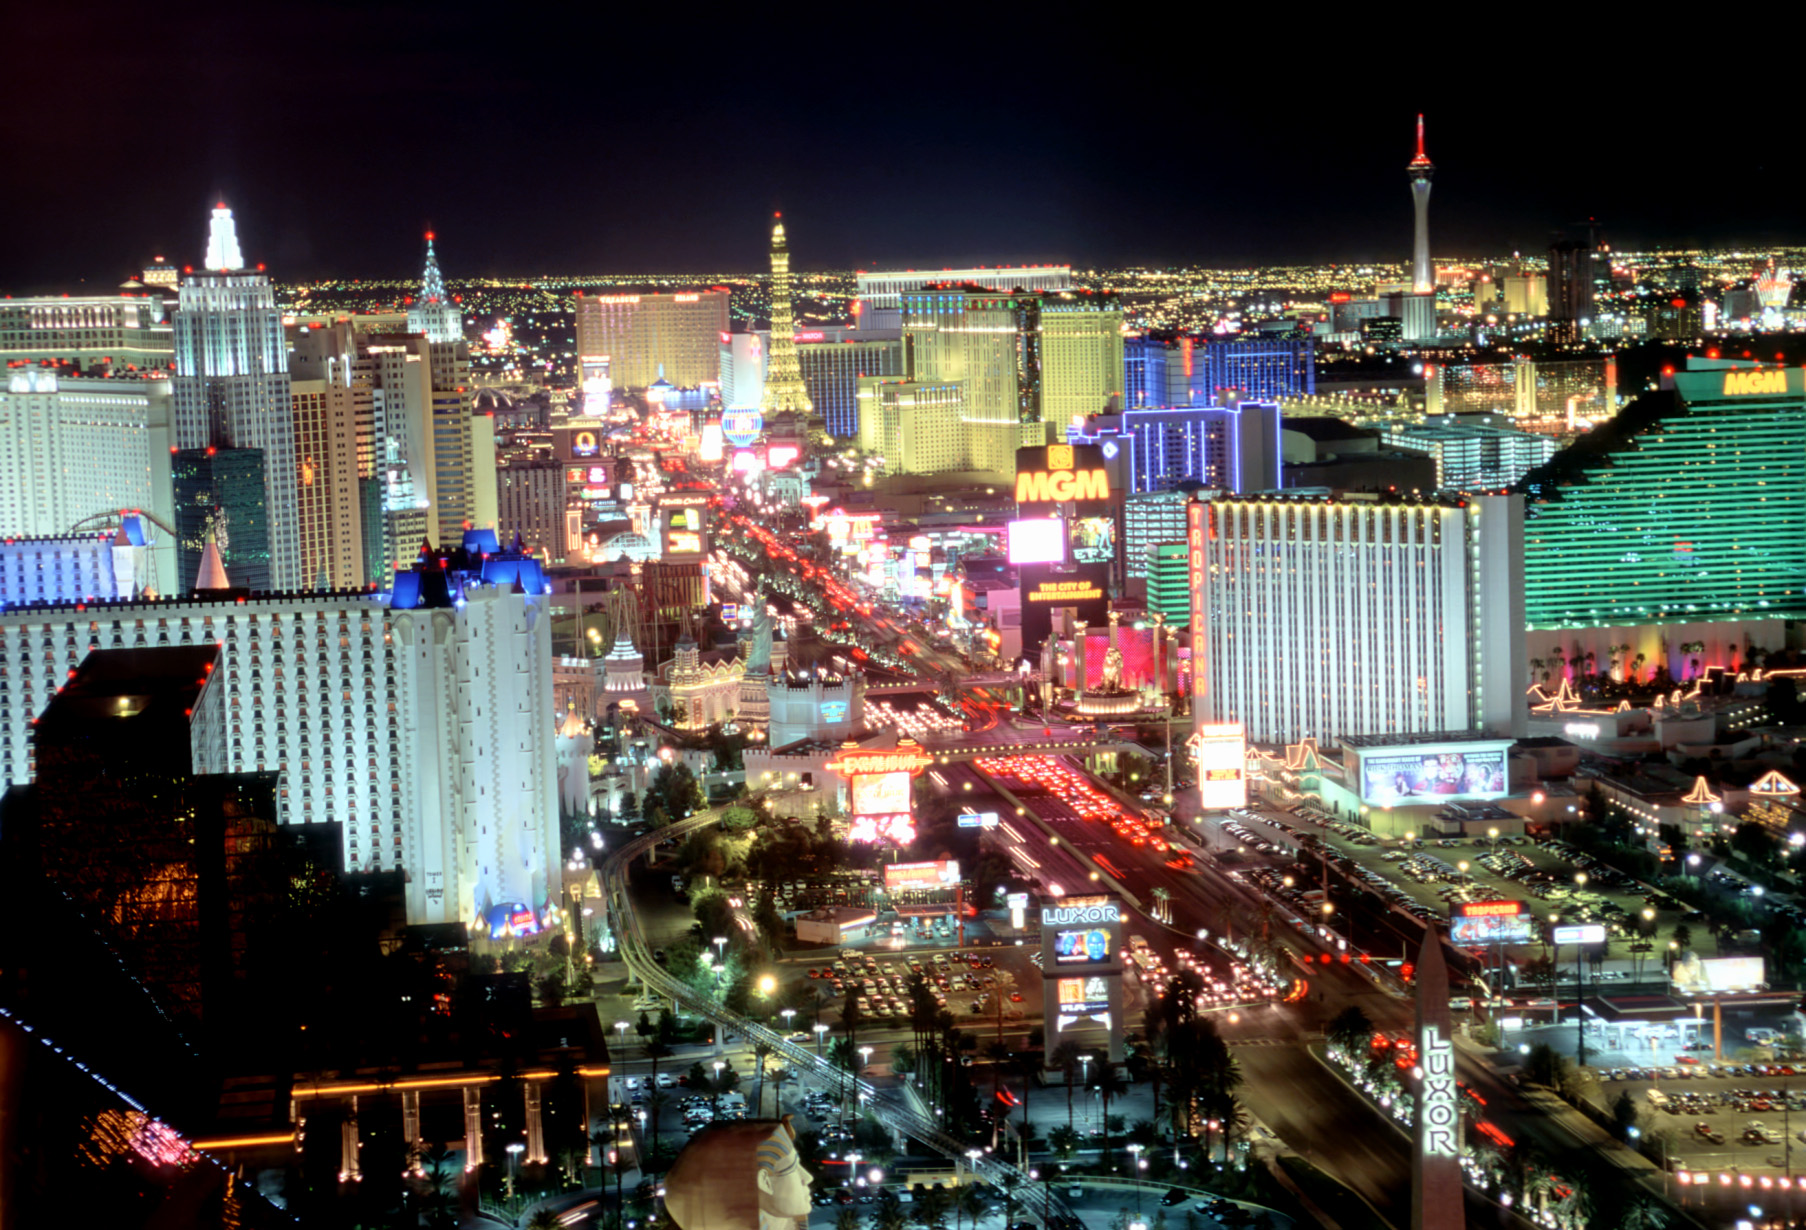 daily scheduled shuttle service to the Las Vegas Strip or airport 1806x1230